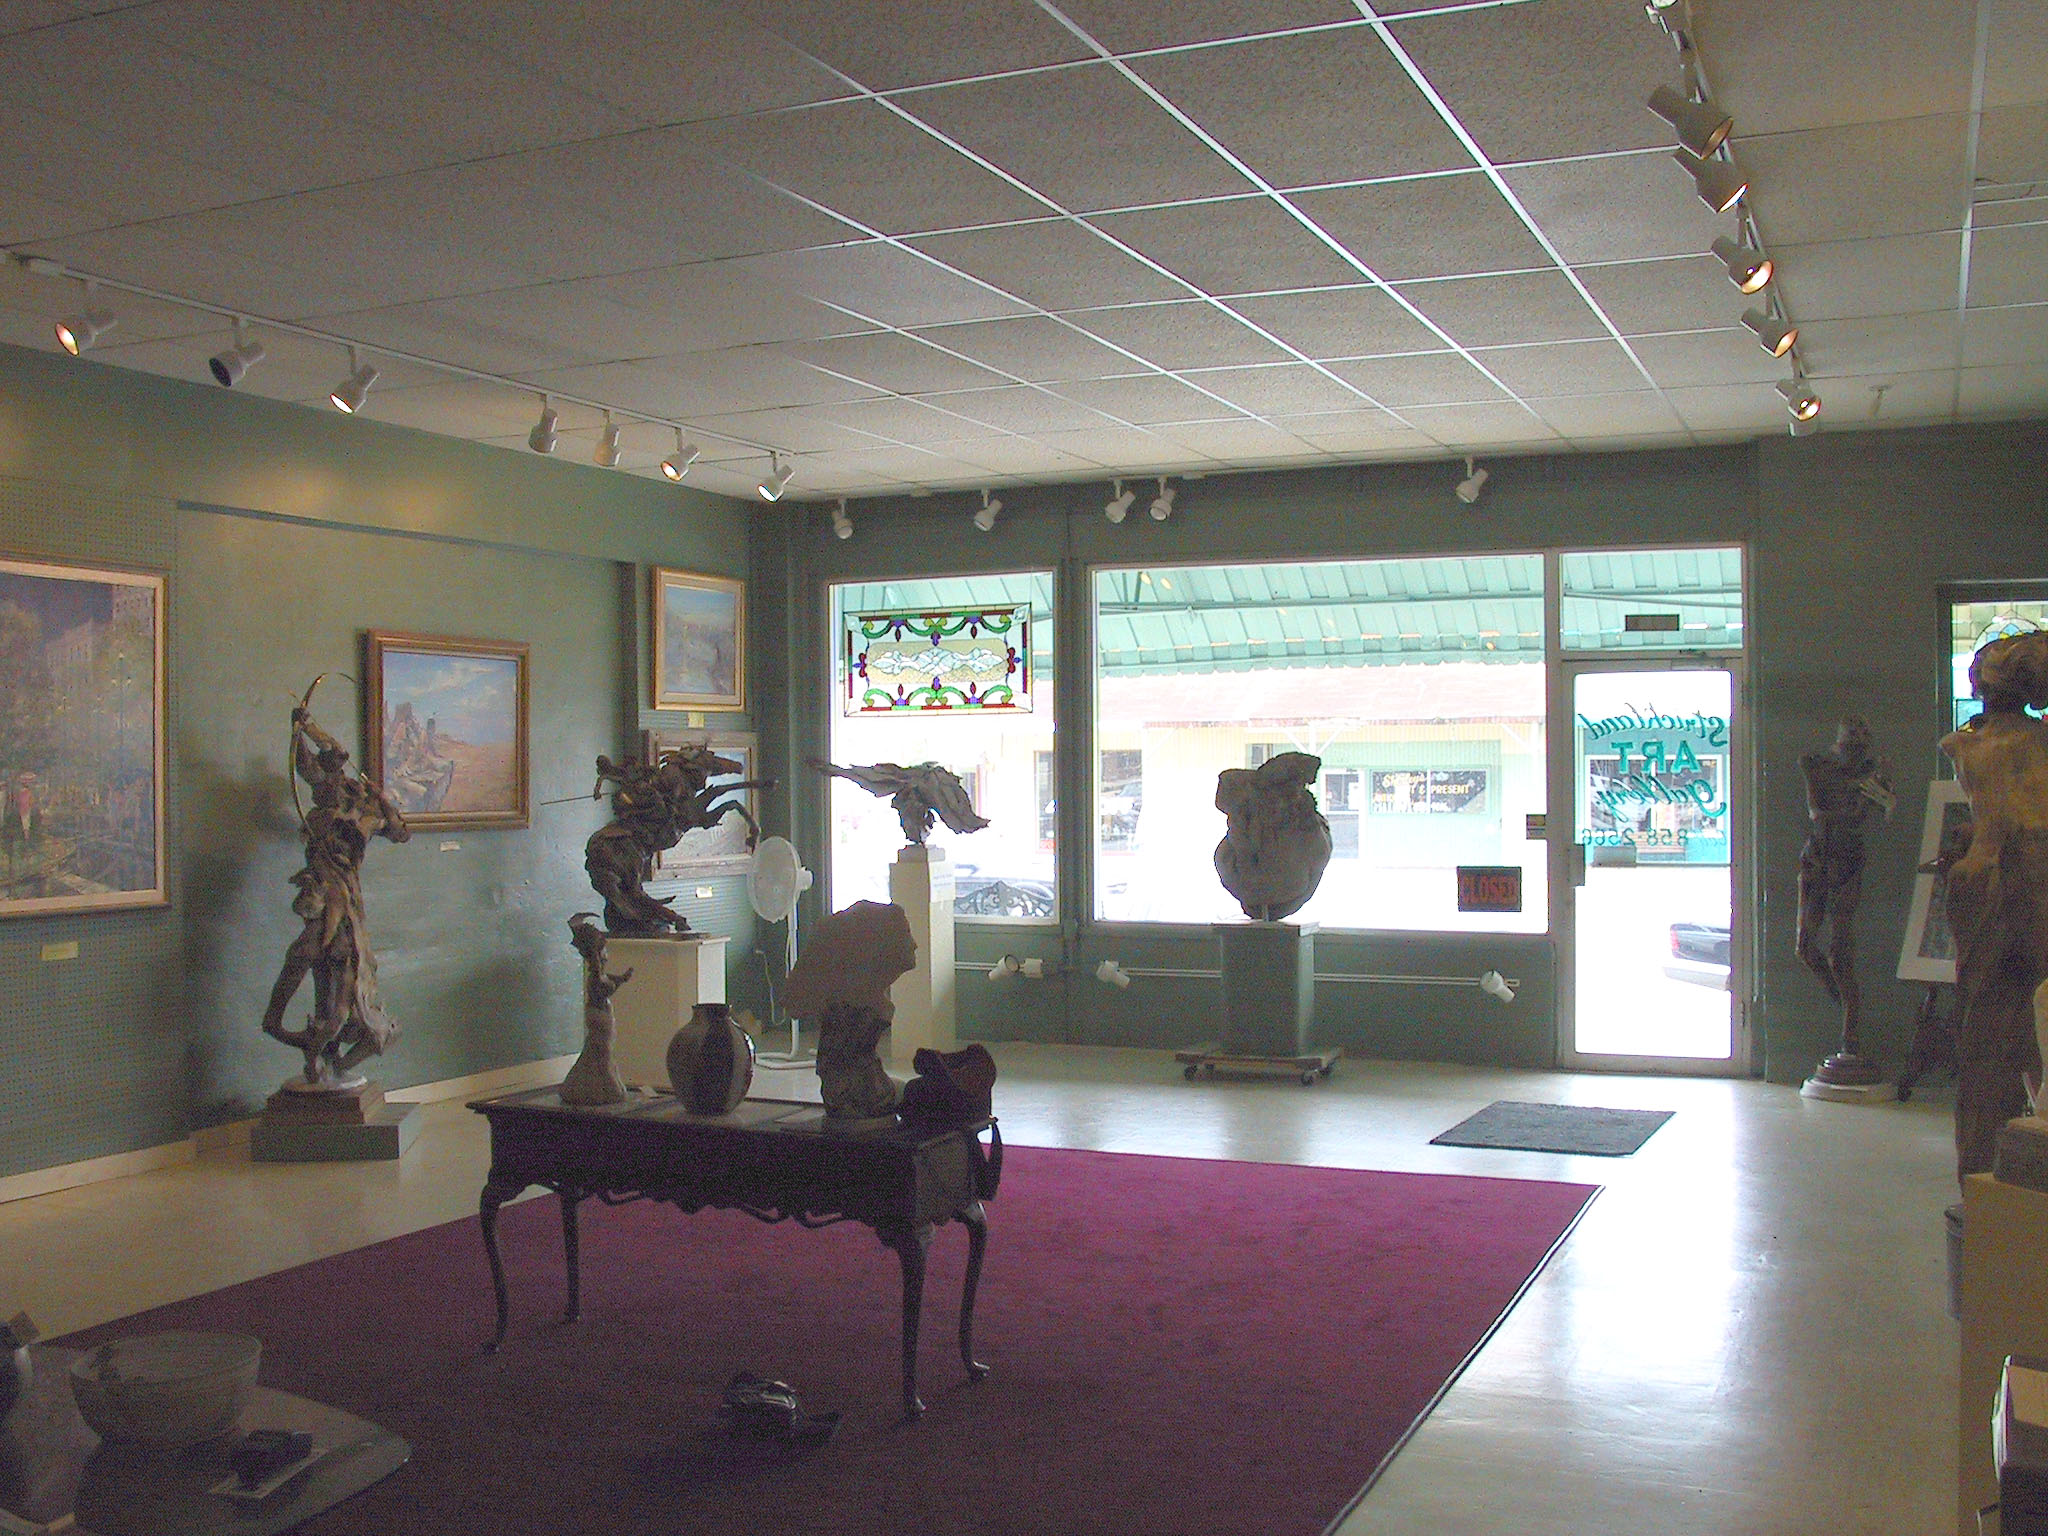 Strickland Art Gallery, where Larry Strickland's art is 	displayed.